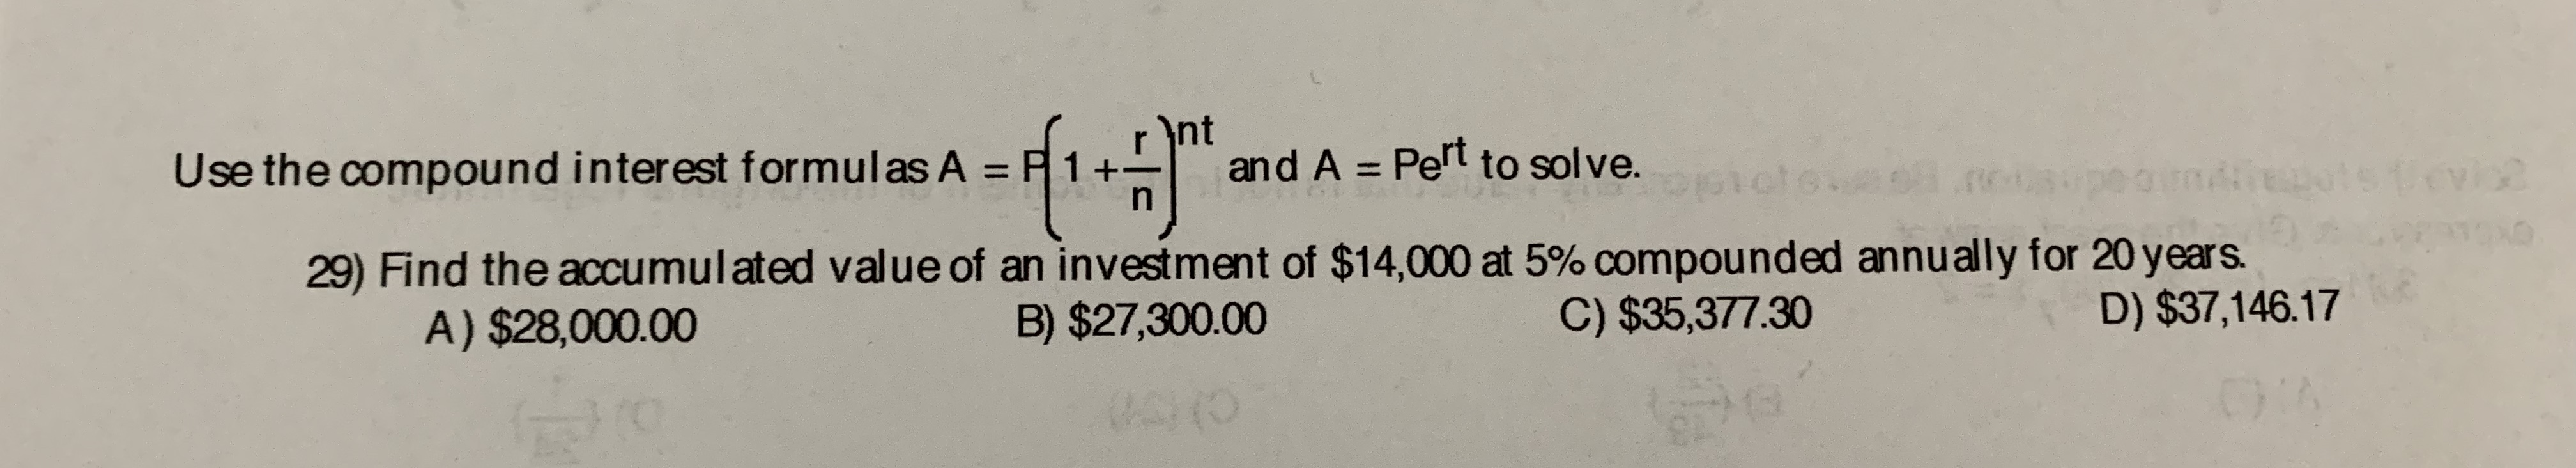 nt and A Pert to solve. P 1 Use the compound interest formulas A Vovice O 29) Find the accumulated value of an investment of $14,000 at 5% compound ed annually for 20 years B) $27,300.00 D) $37,146.17 C) $35,377.30 A) $28,000.00 003 VA:(O